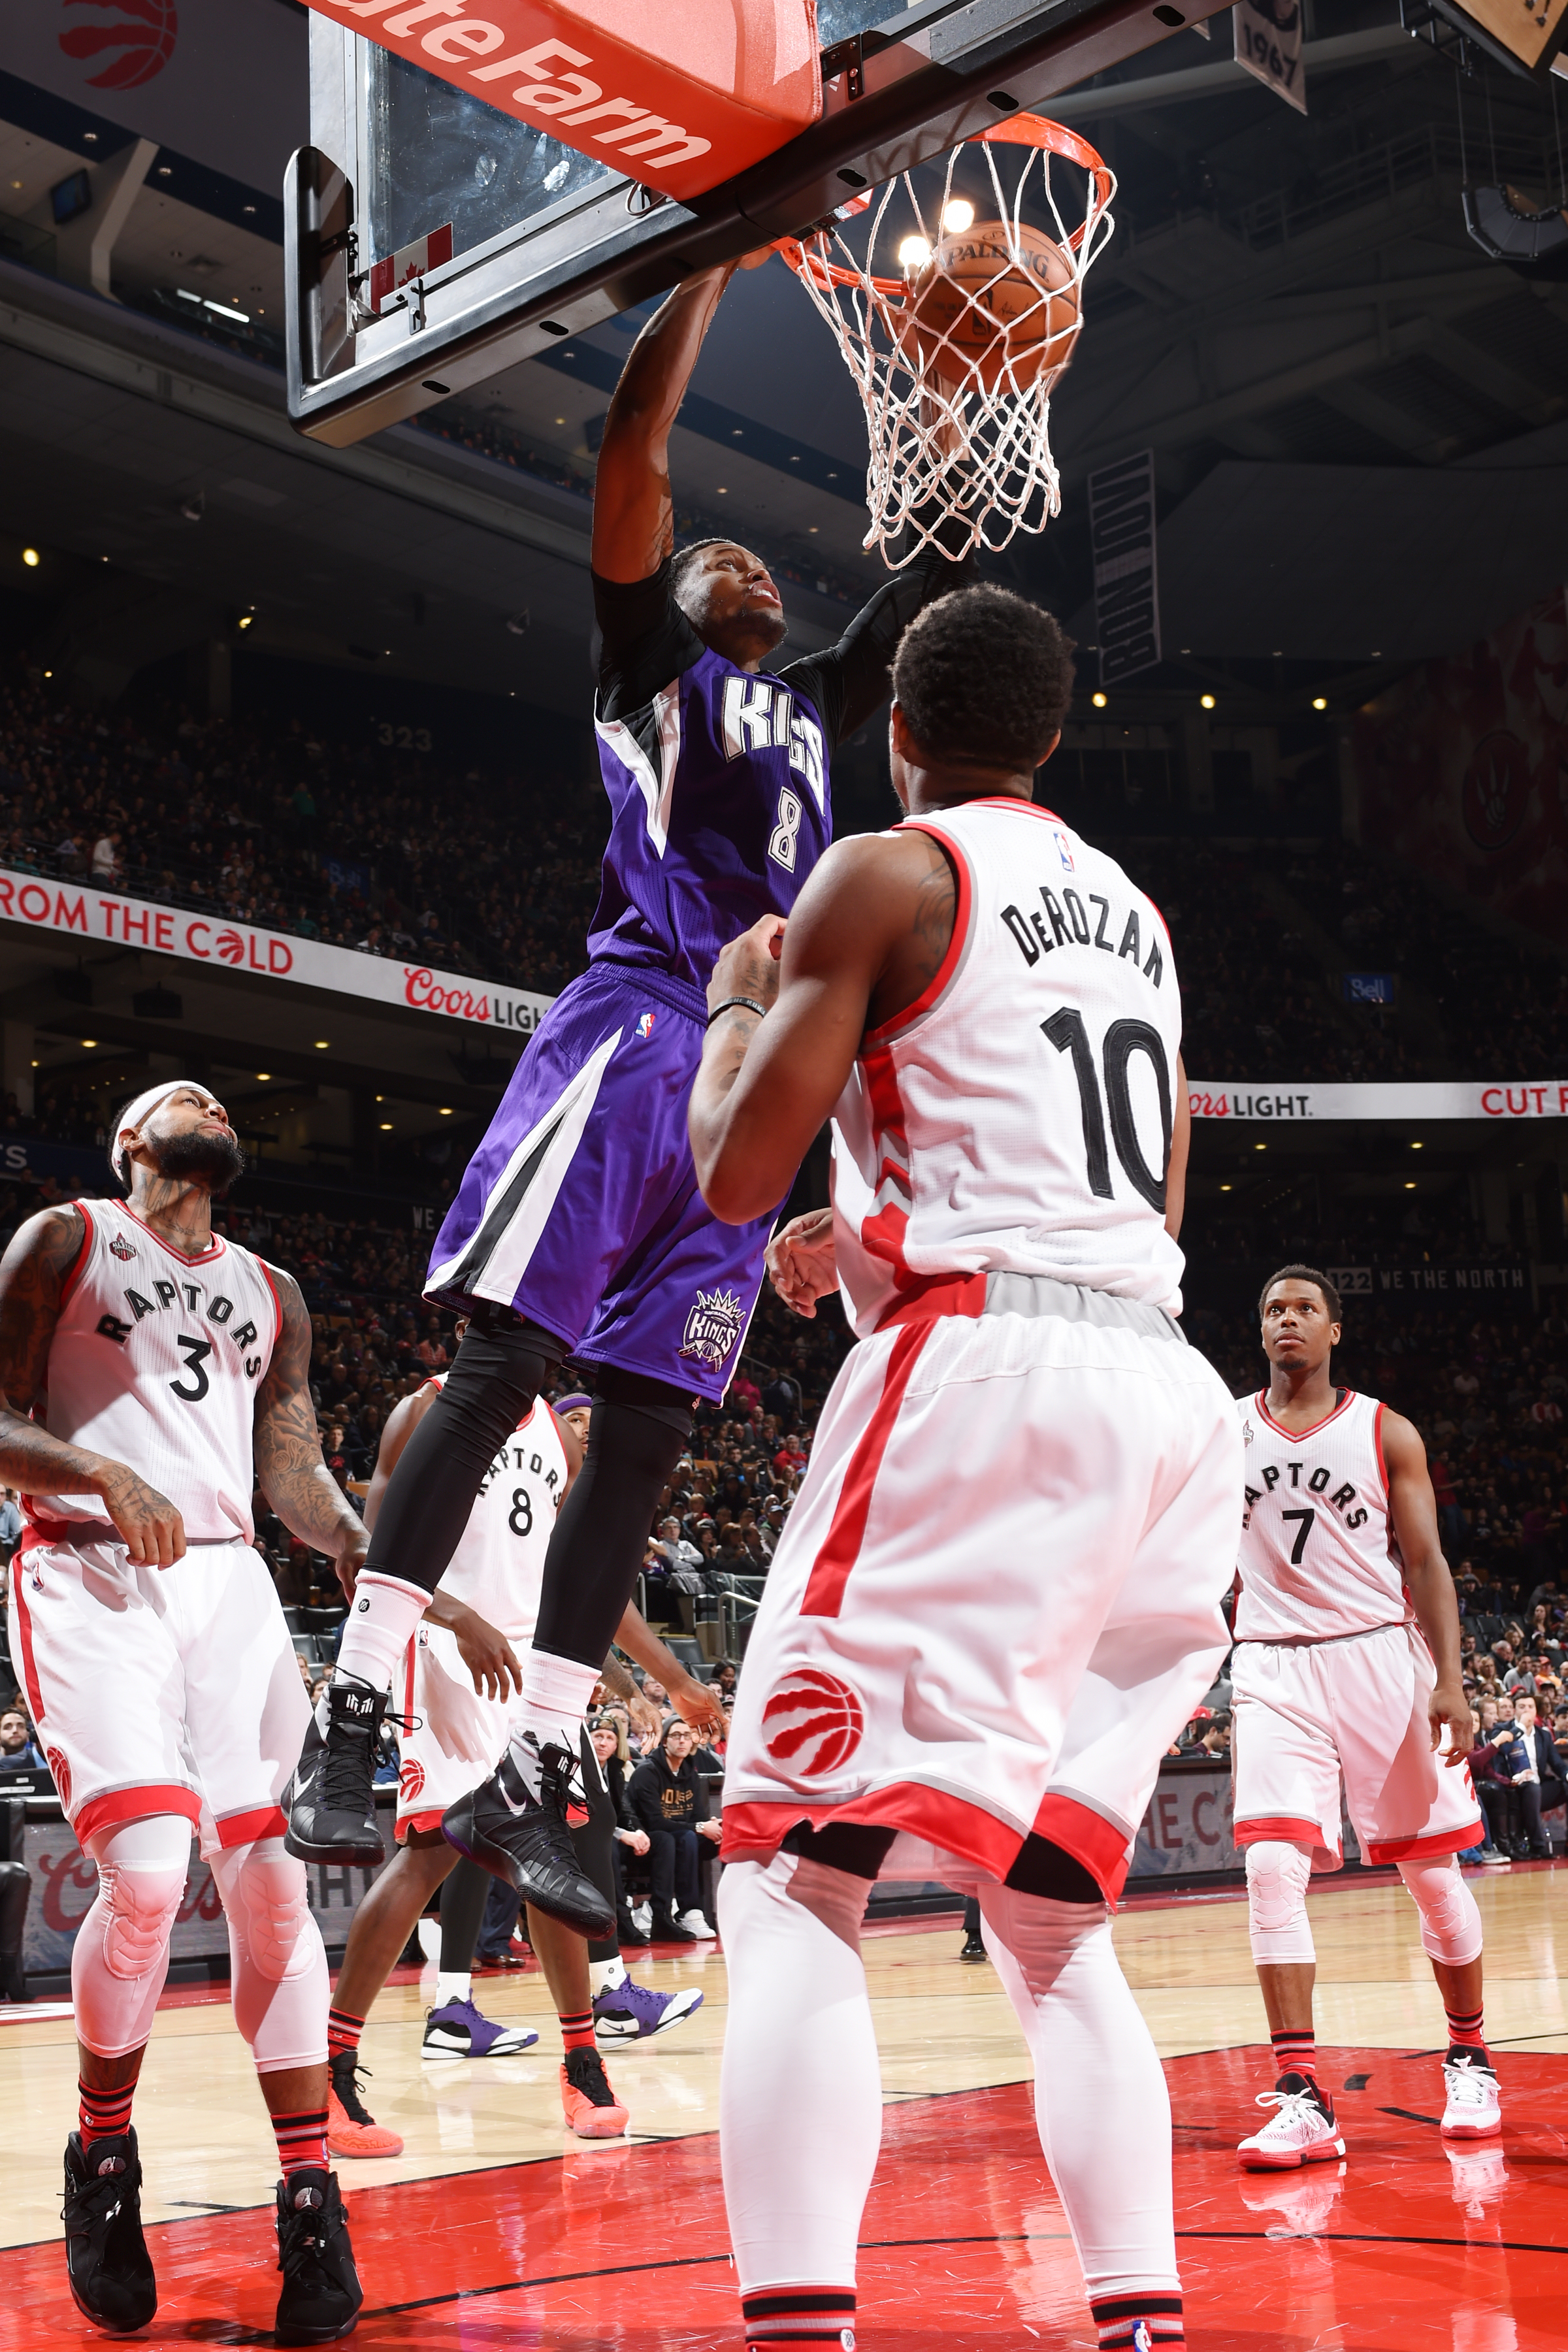 TORONTO, CANADA - DECEMBER 20: Rudy Gay #8 of the Sacramento Kings dunks against the Toronto Raptors on December 20, 2015 at the Air Canada Centre in Toronto, Ontario, Canada.  (Photo by Ron Turenne/NBAE via Getty Images)